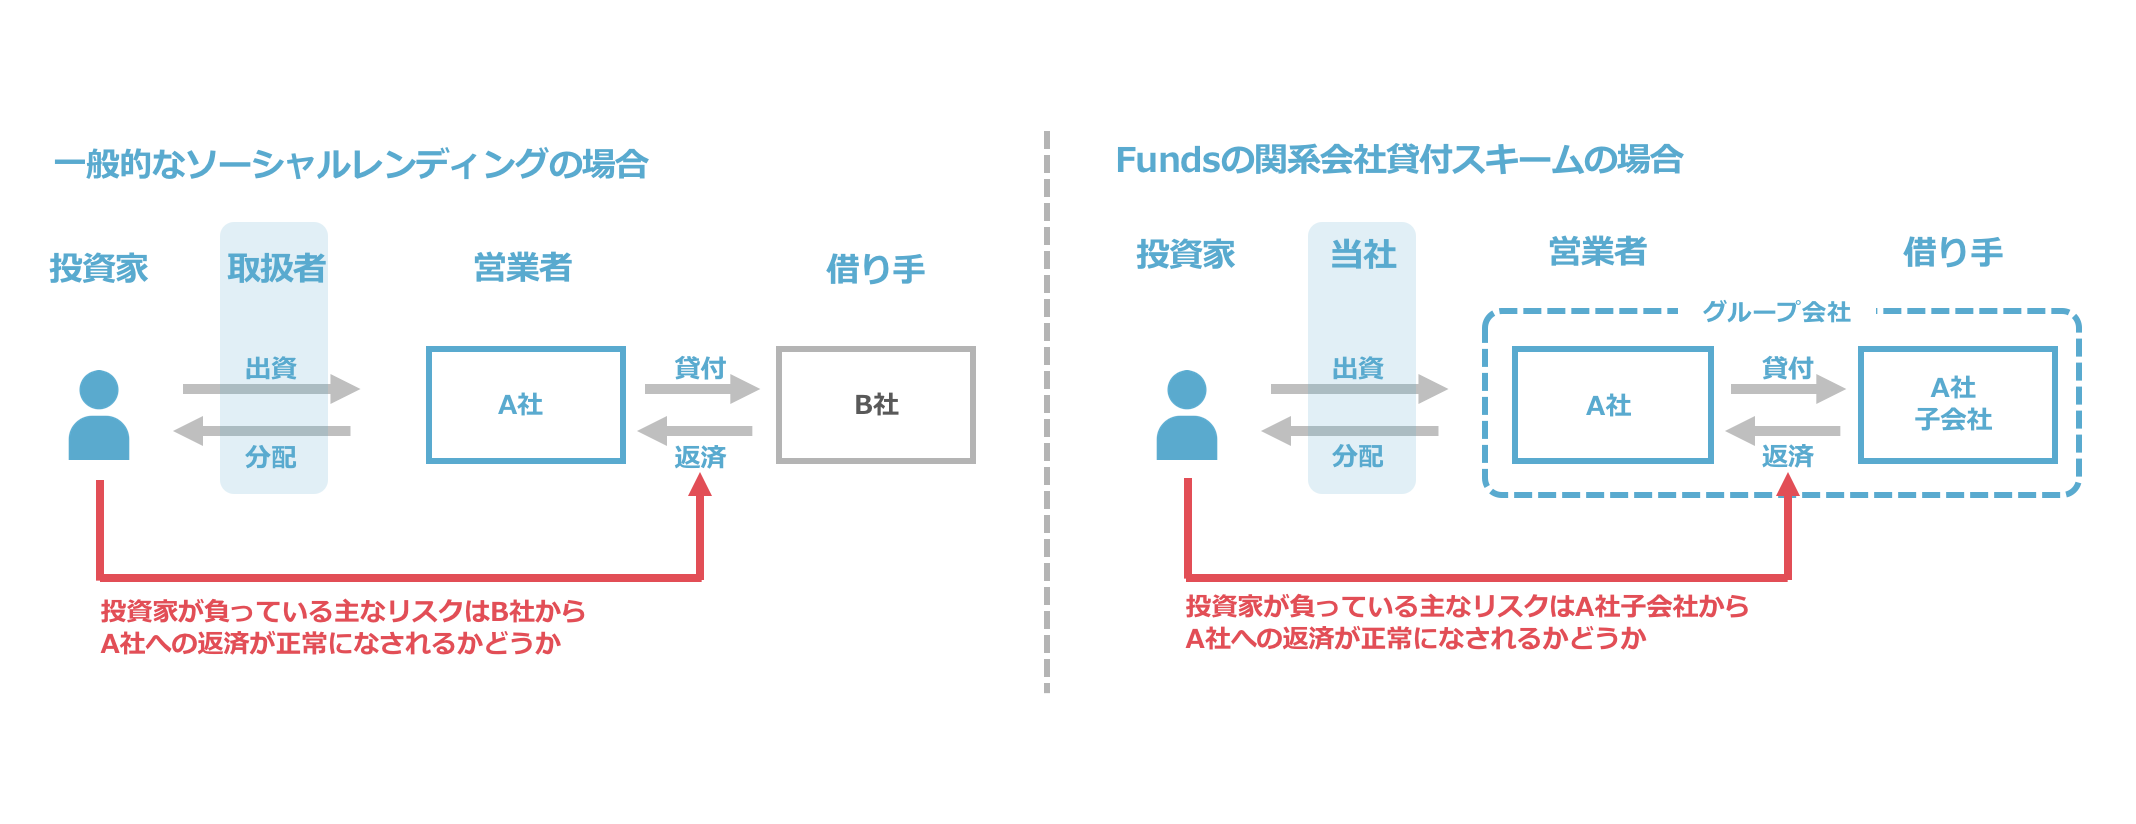 funds-docs004.png